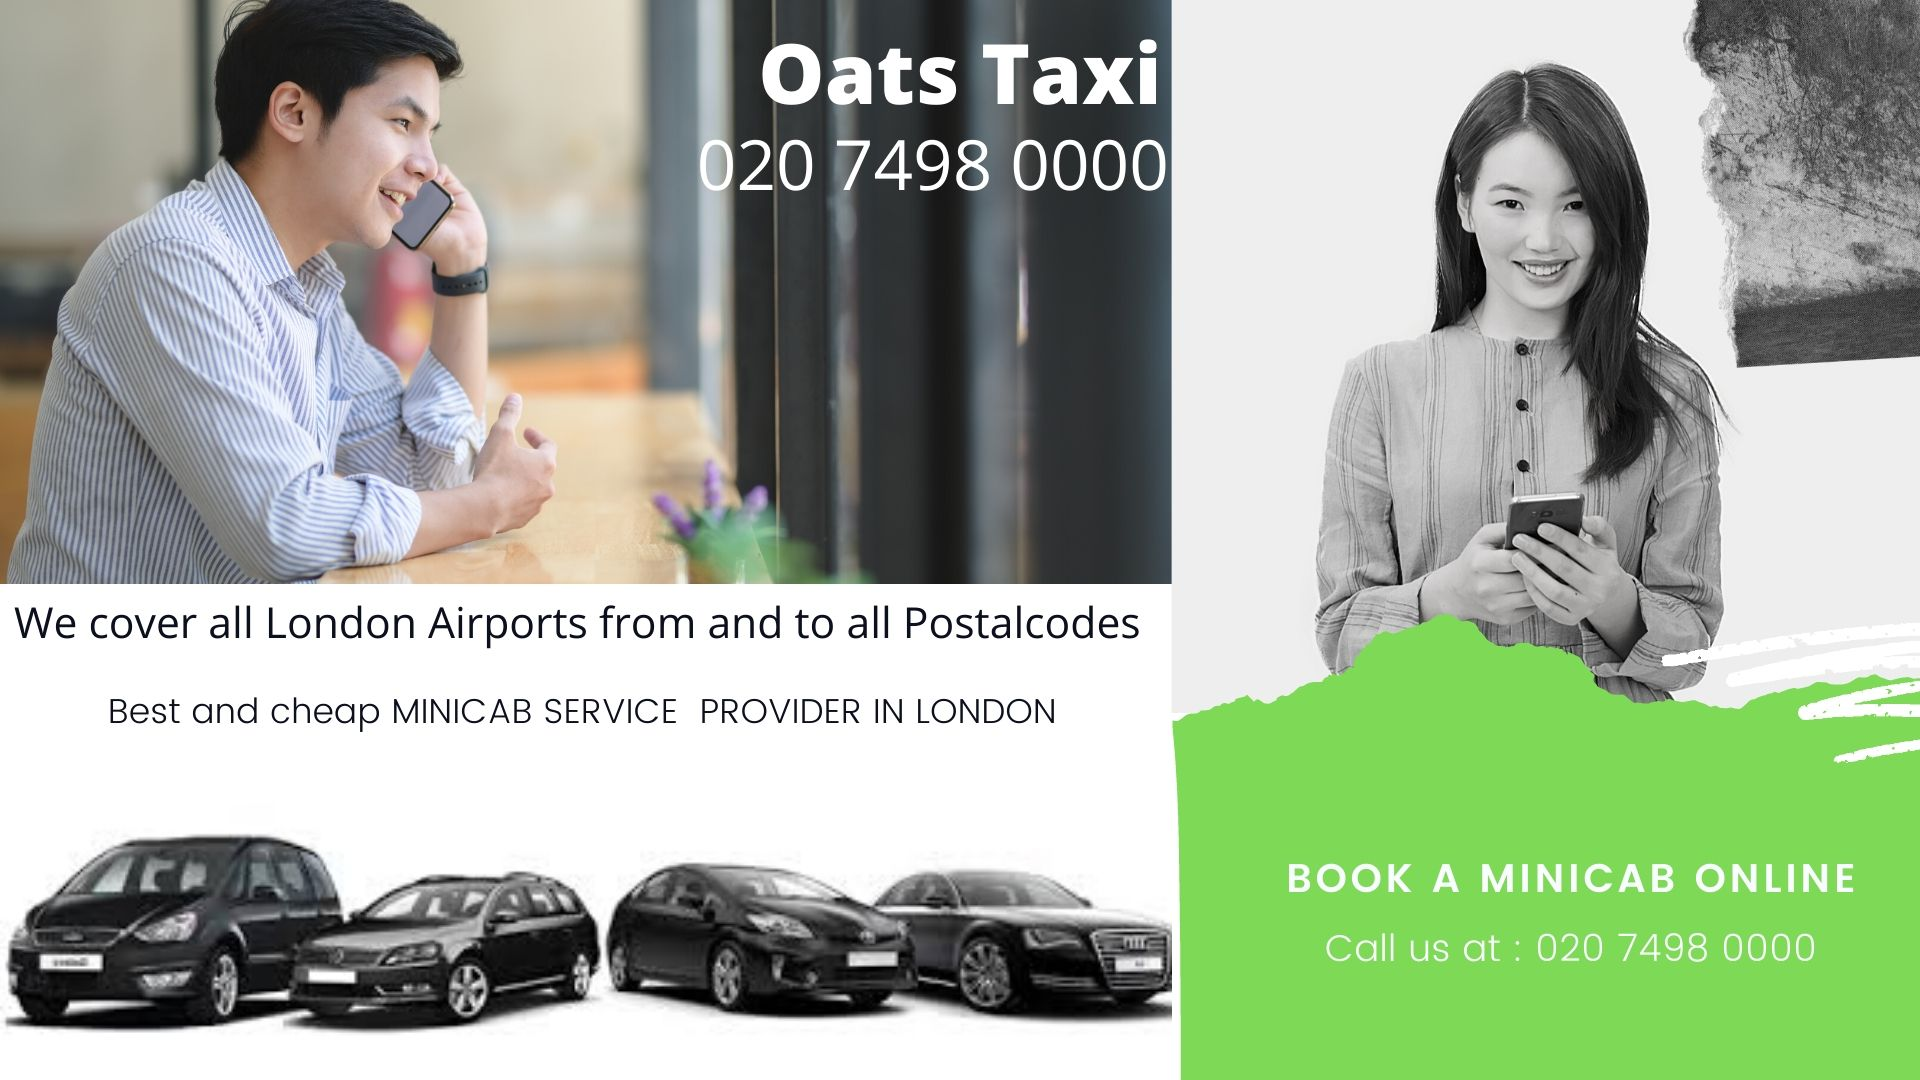 Nearest Taxi Office in Knightsbridge | Gatwick Airport | Call now : 02074980000